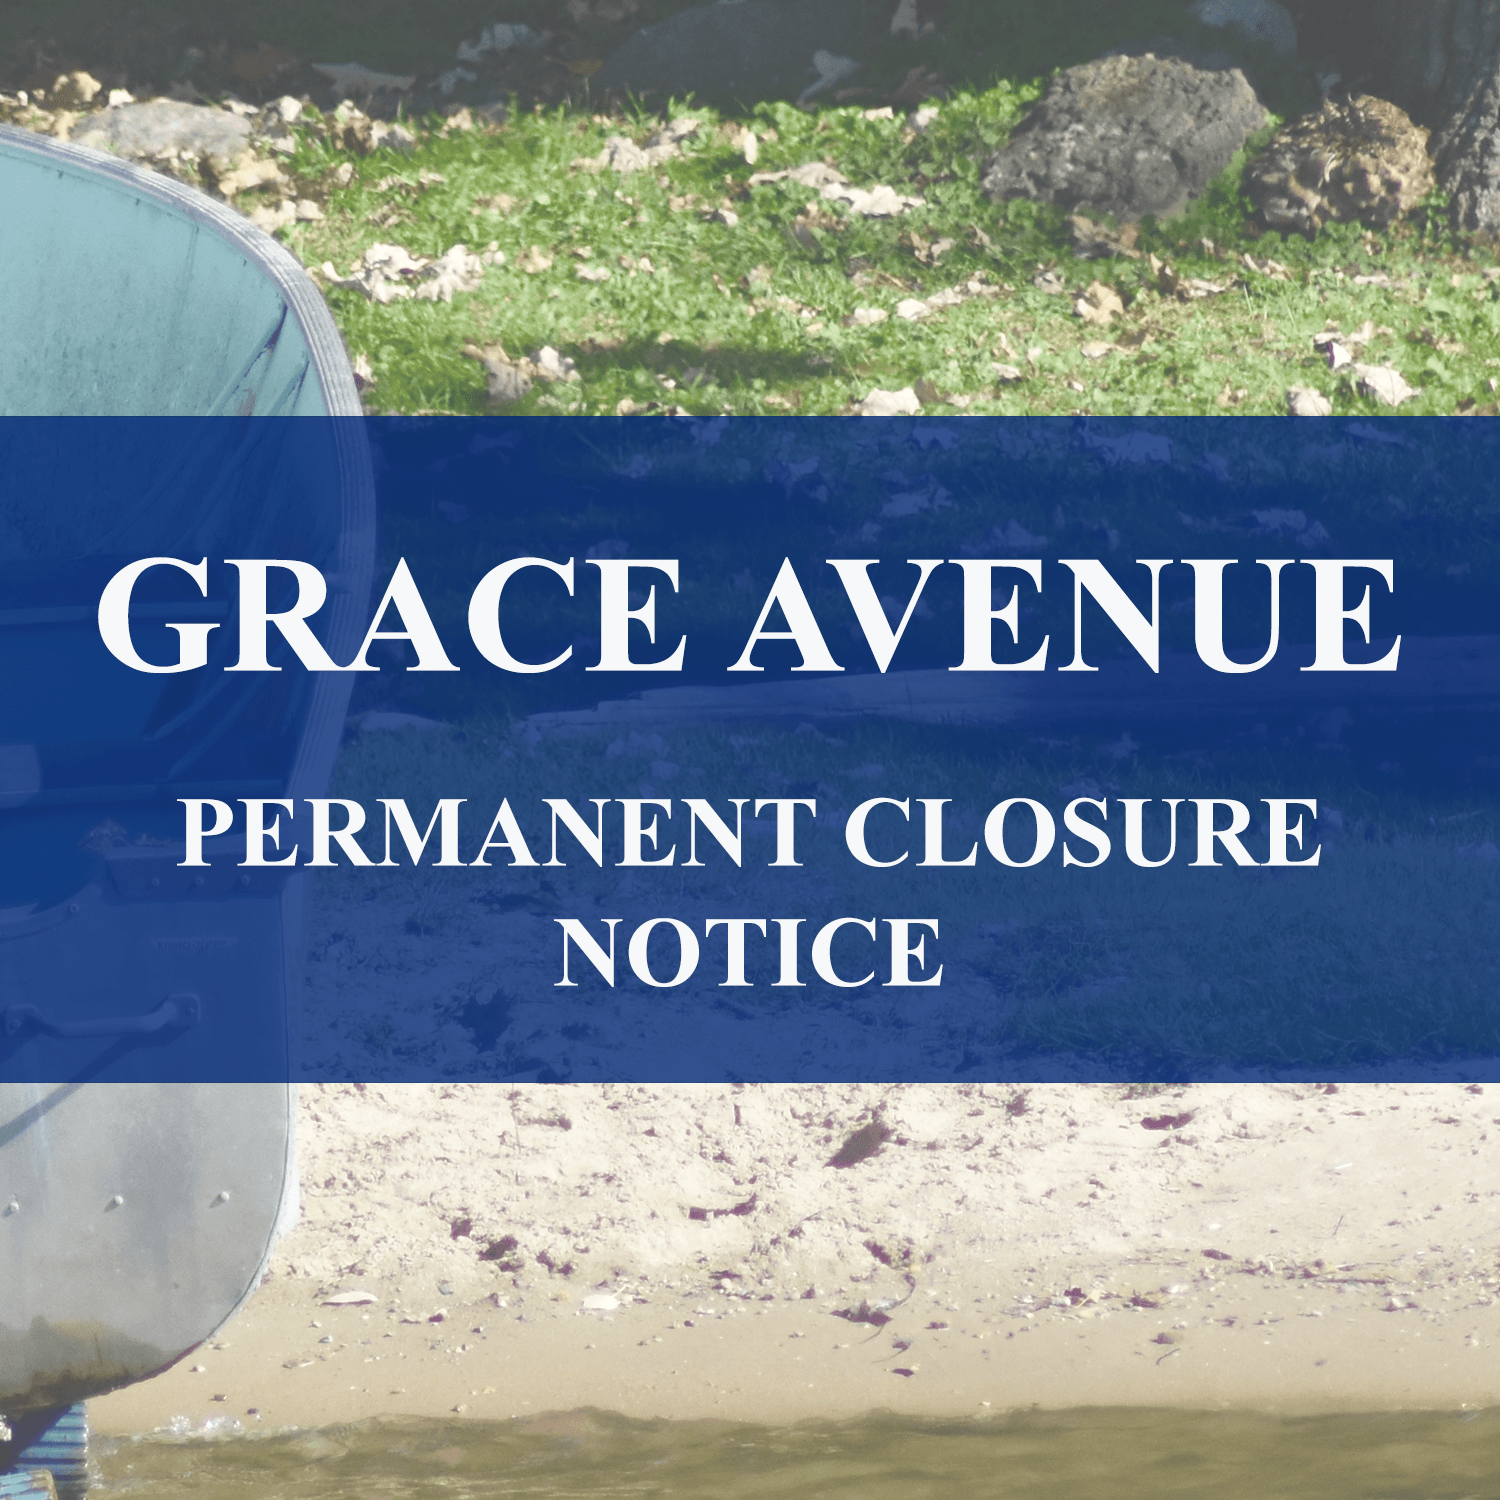 GRACE AVENUE CLOSURE